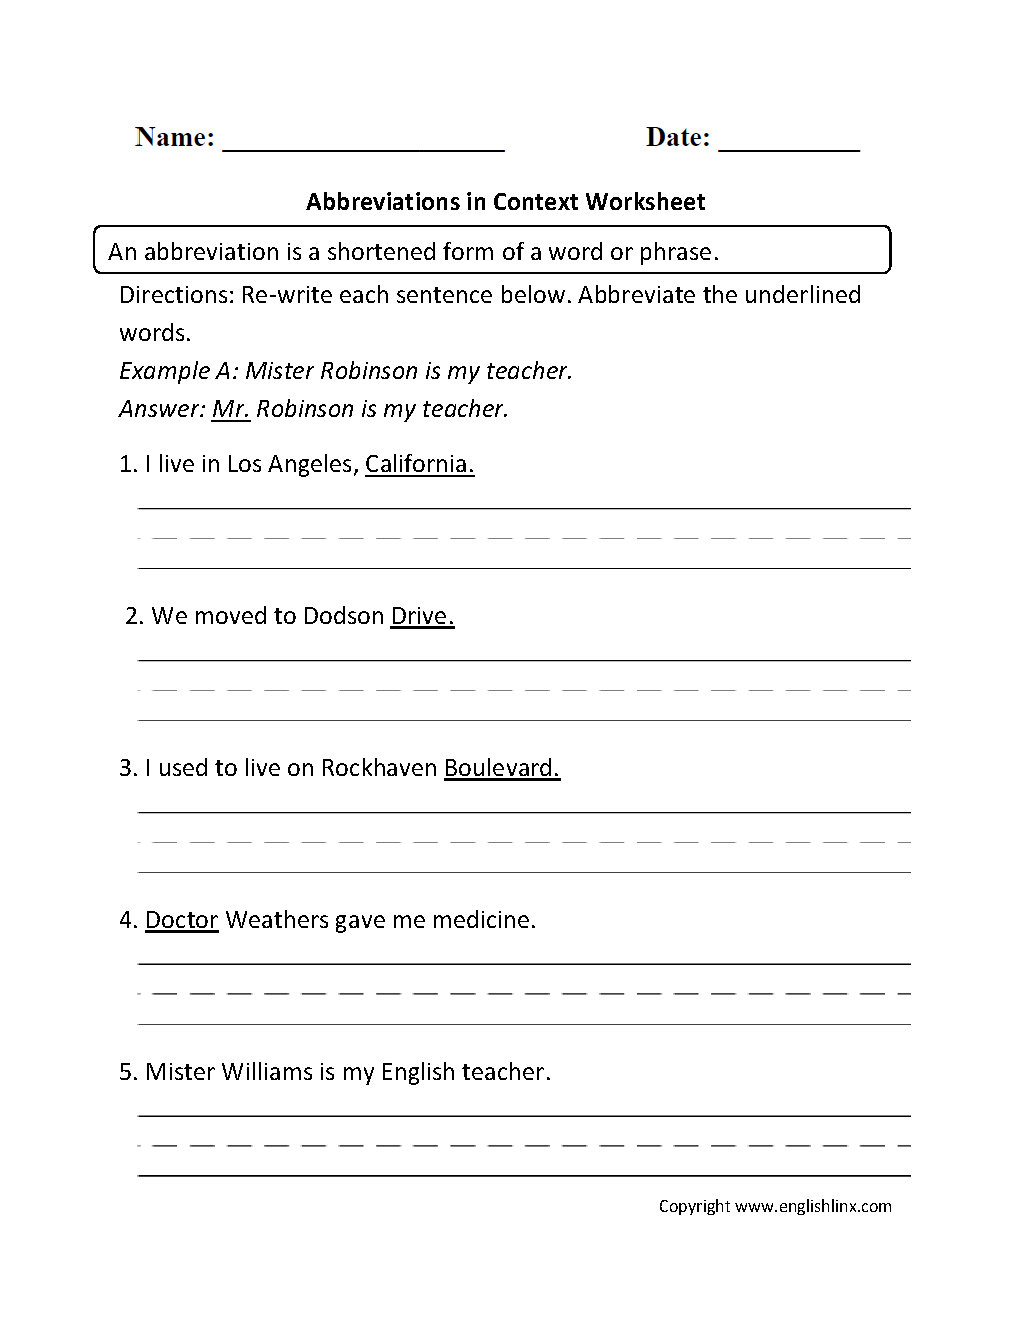 Abbreviations in Context Worksheet Worksheets – Abbreviations Worksheet